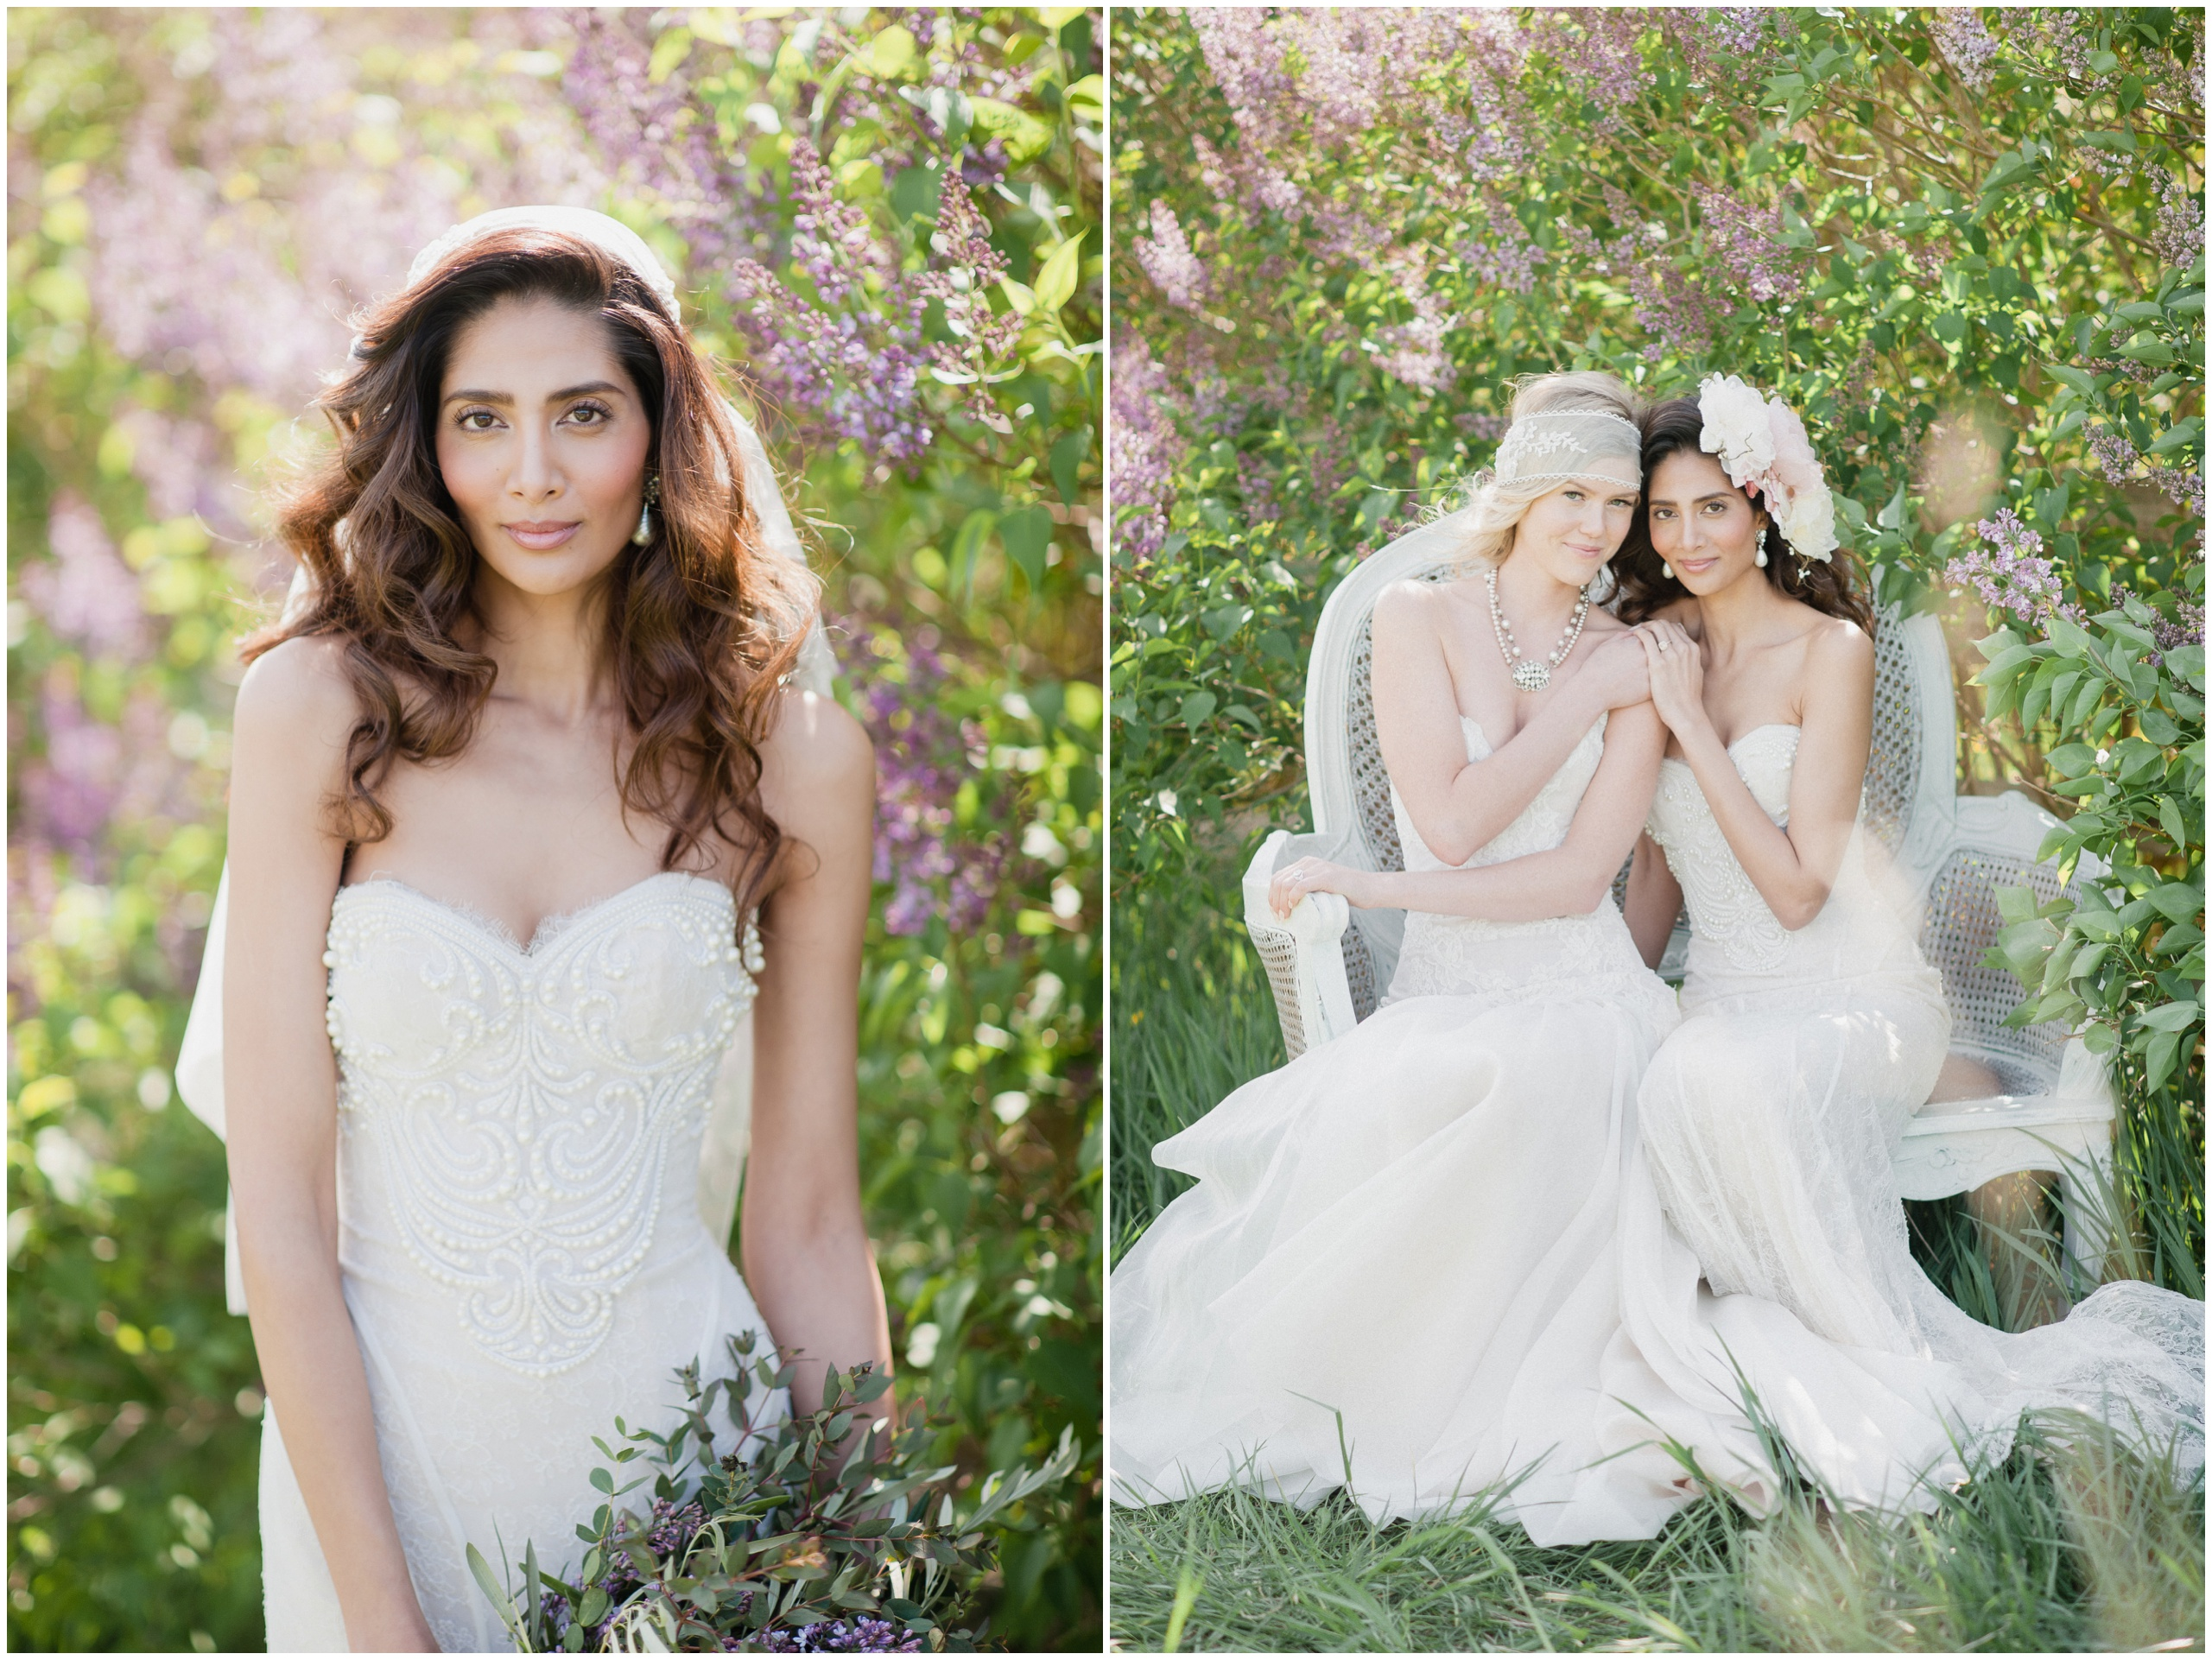 Wedding Inspiration: Brides wearing Hattitude necklaces, Blair Nadeau veils and Ines Di Santo gowns in blooming lilac bush.